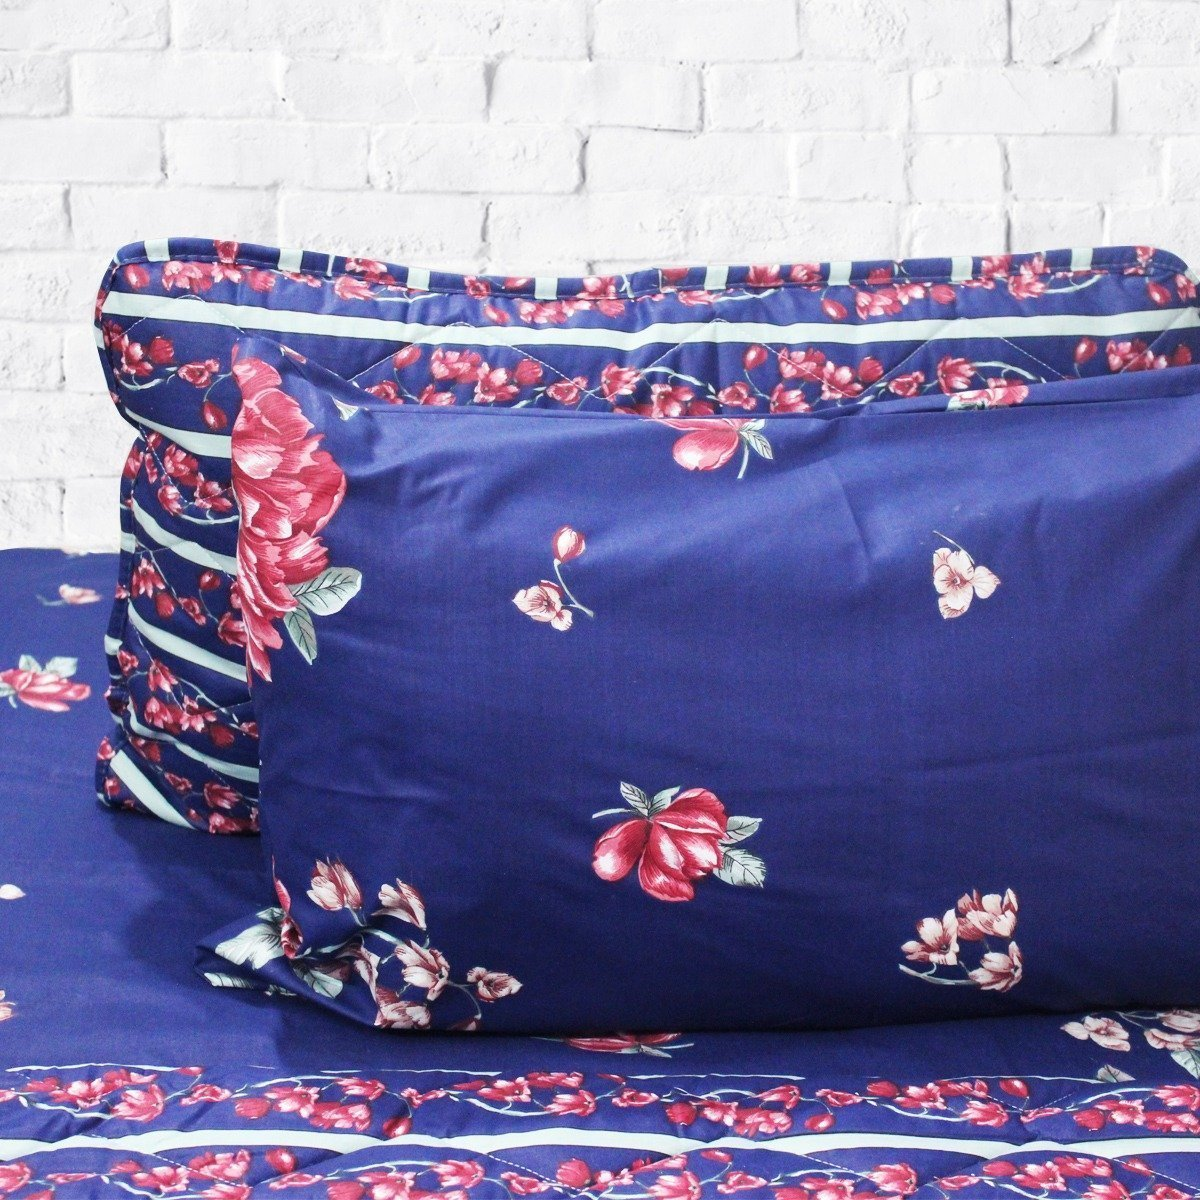 Blue Summer - Cotton Bed Spread Set - 6 pc - waseeh.com